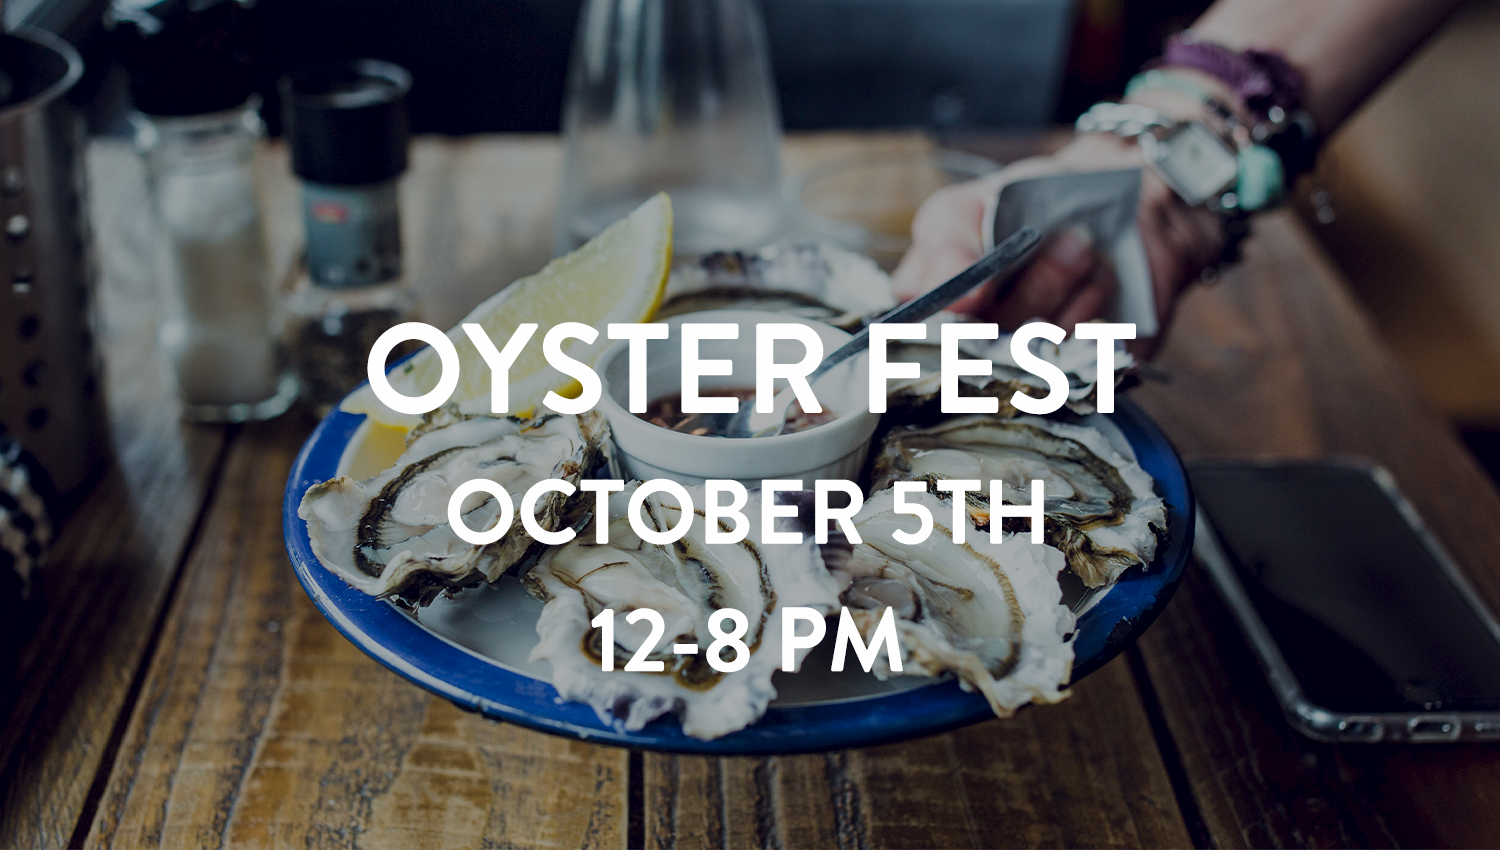 banner-oysterfest-underdog-nyc-stone-st-financial-district-2019.png